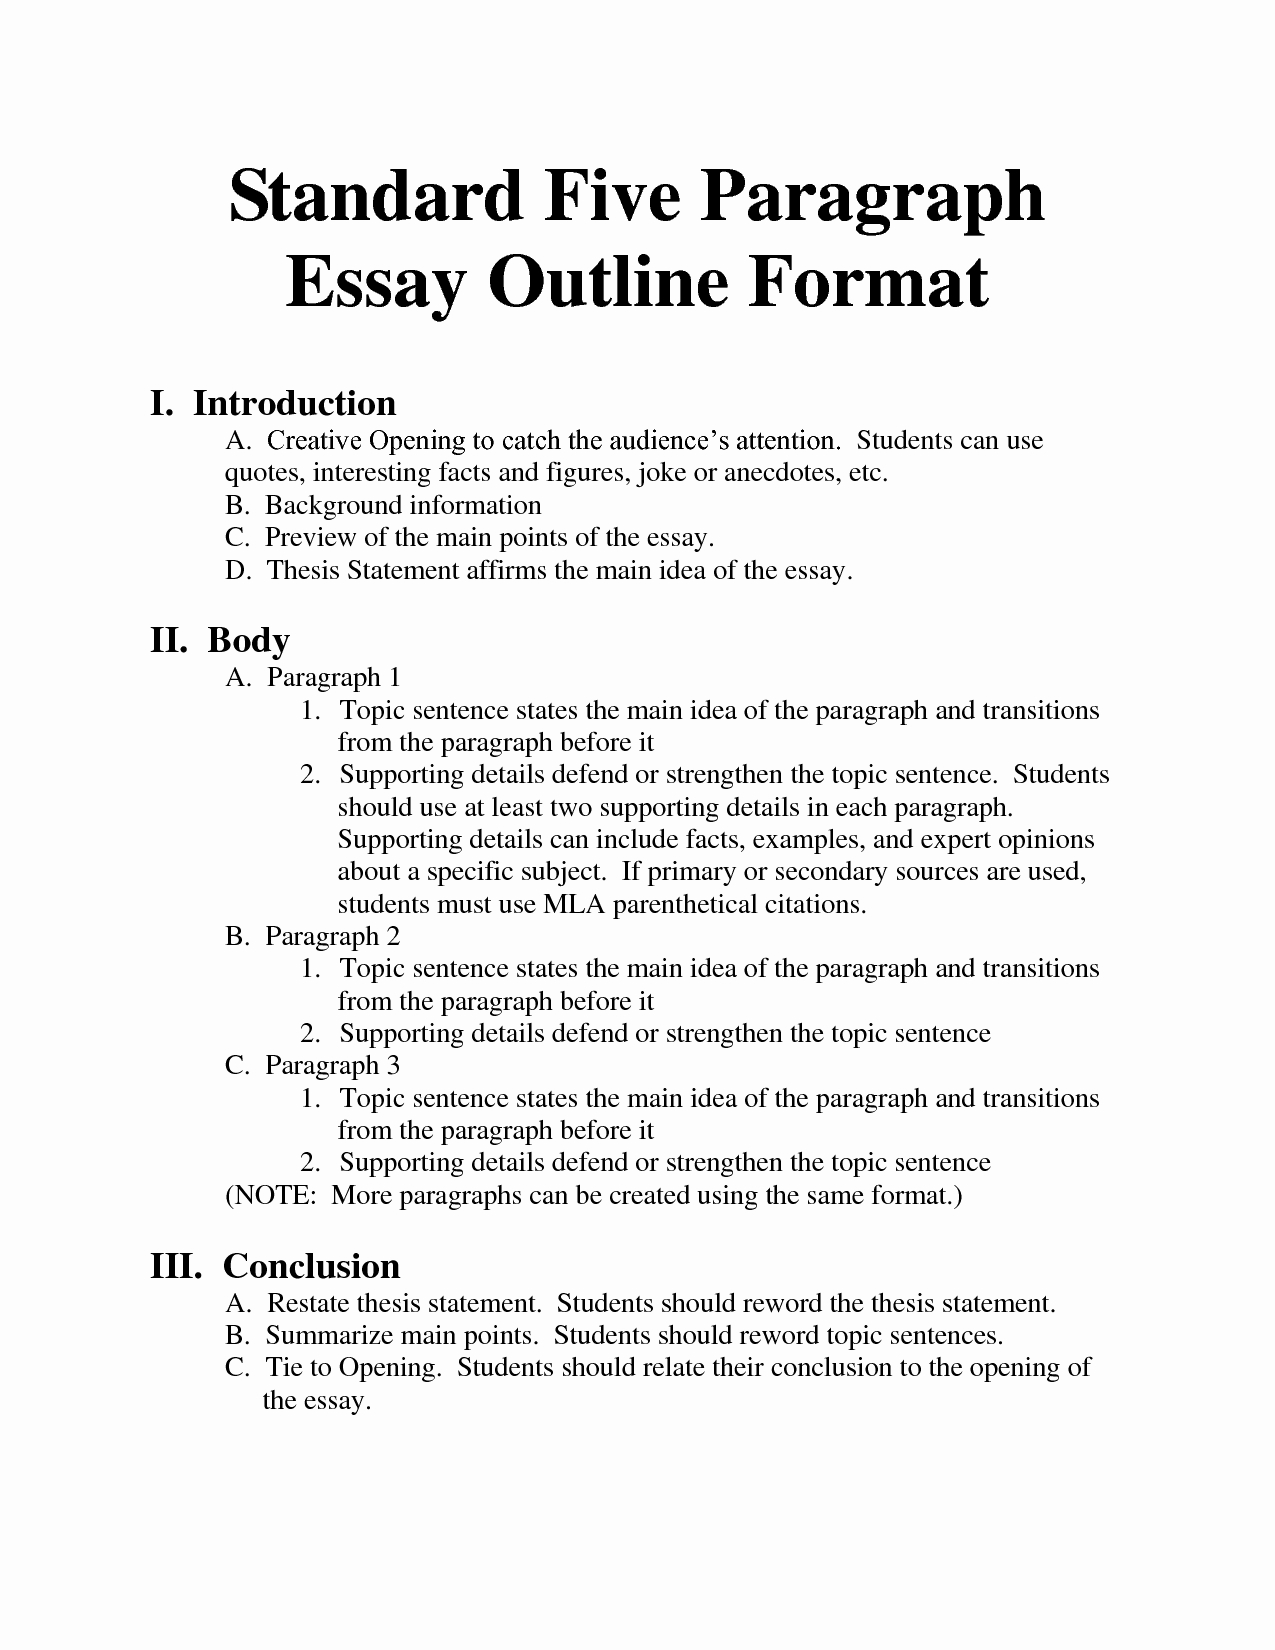 020 What To Write On Birthday Card Inspirational Essay Party Standard Format Bing Images Essays Of Breathtaking About Life And Struggles For Youth Full